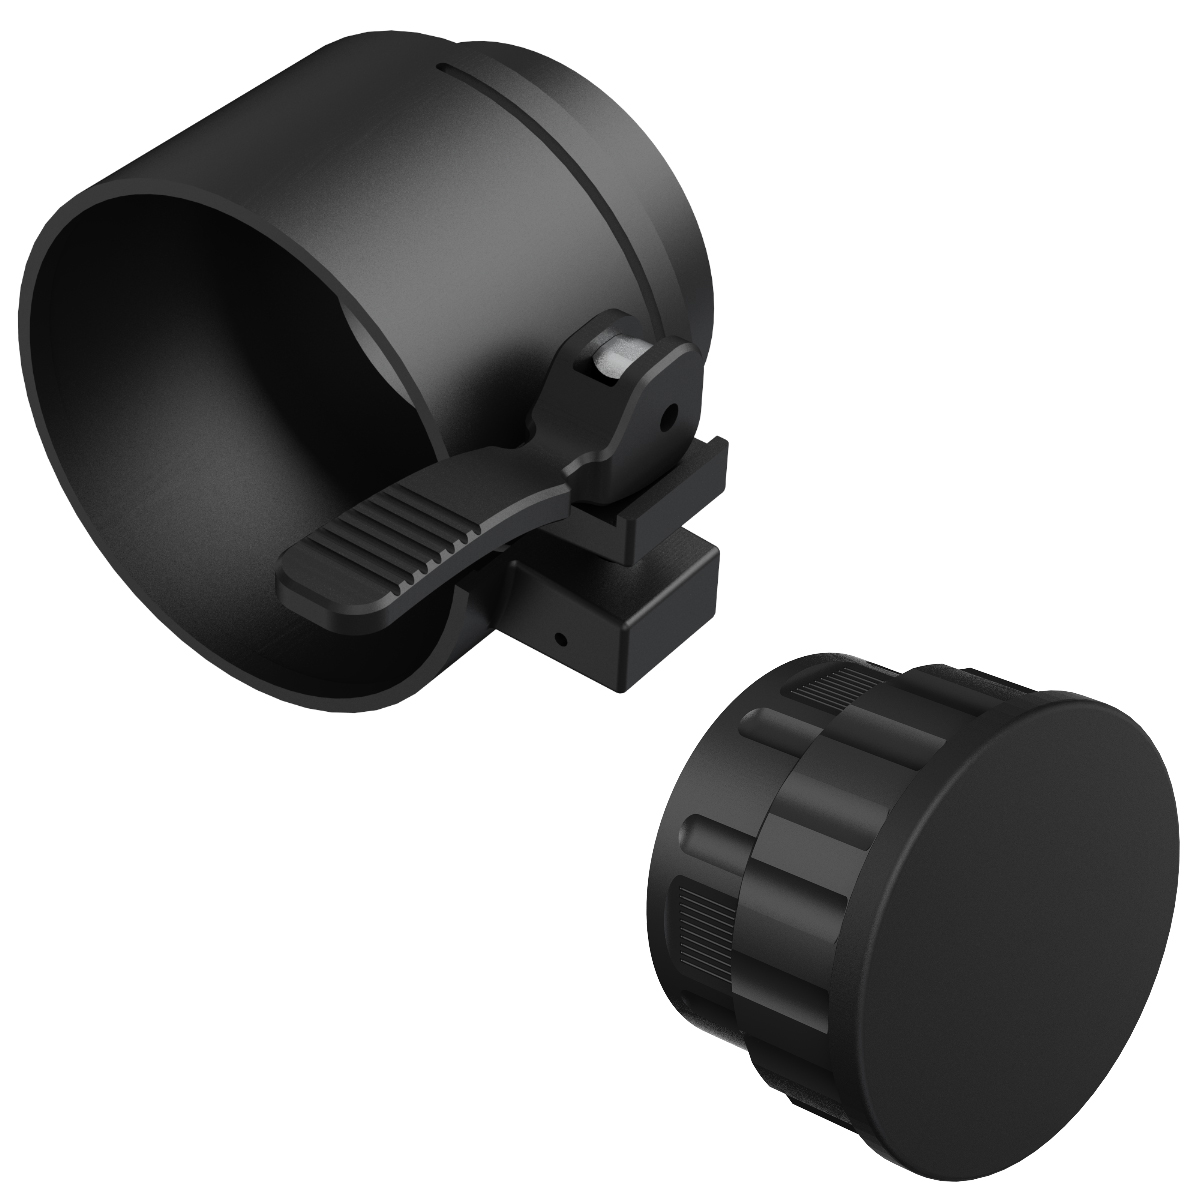 HIK Micro Scope Adaptor 50mm Clamp & Clip-On Lens System